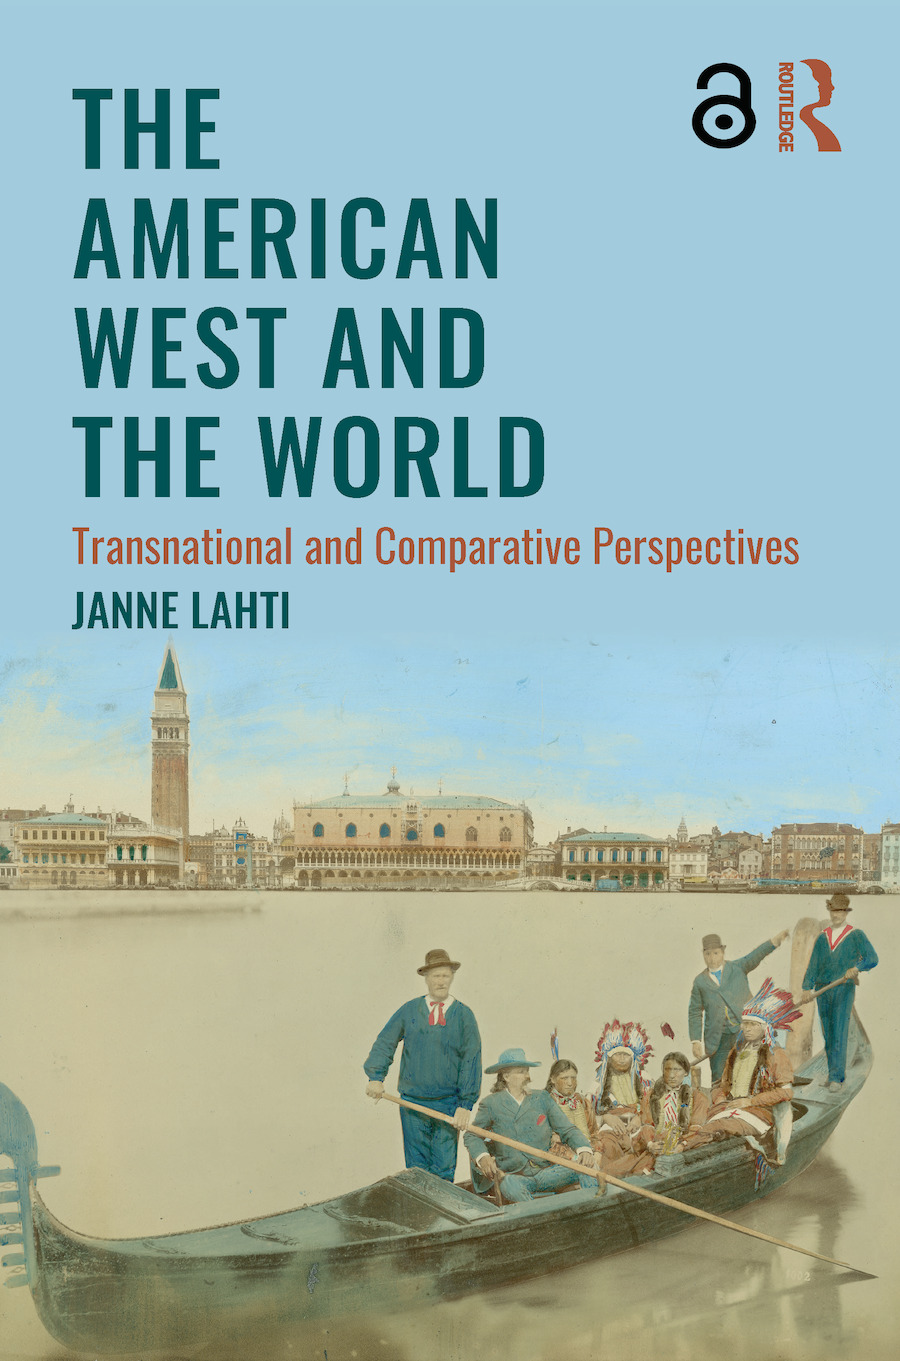 The American West and the World: Transnational and Comparative Perspectives book cover